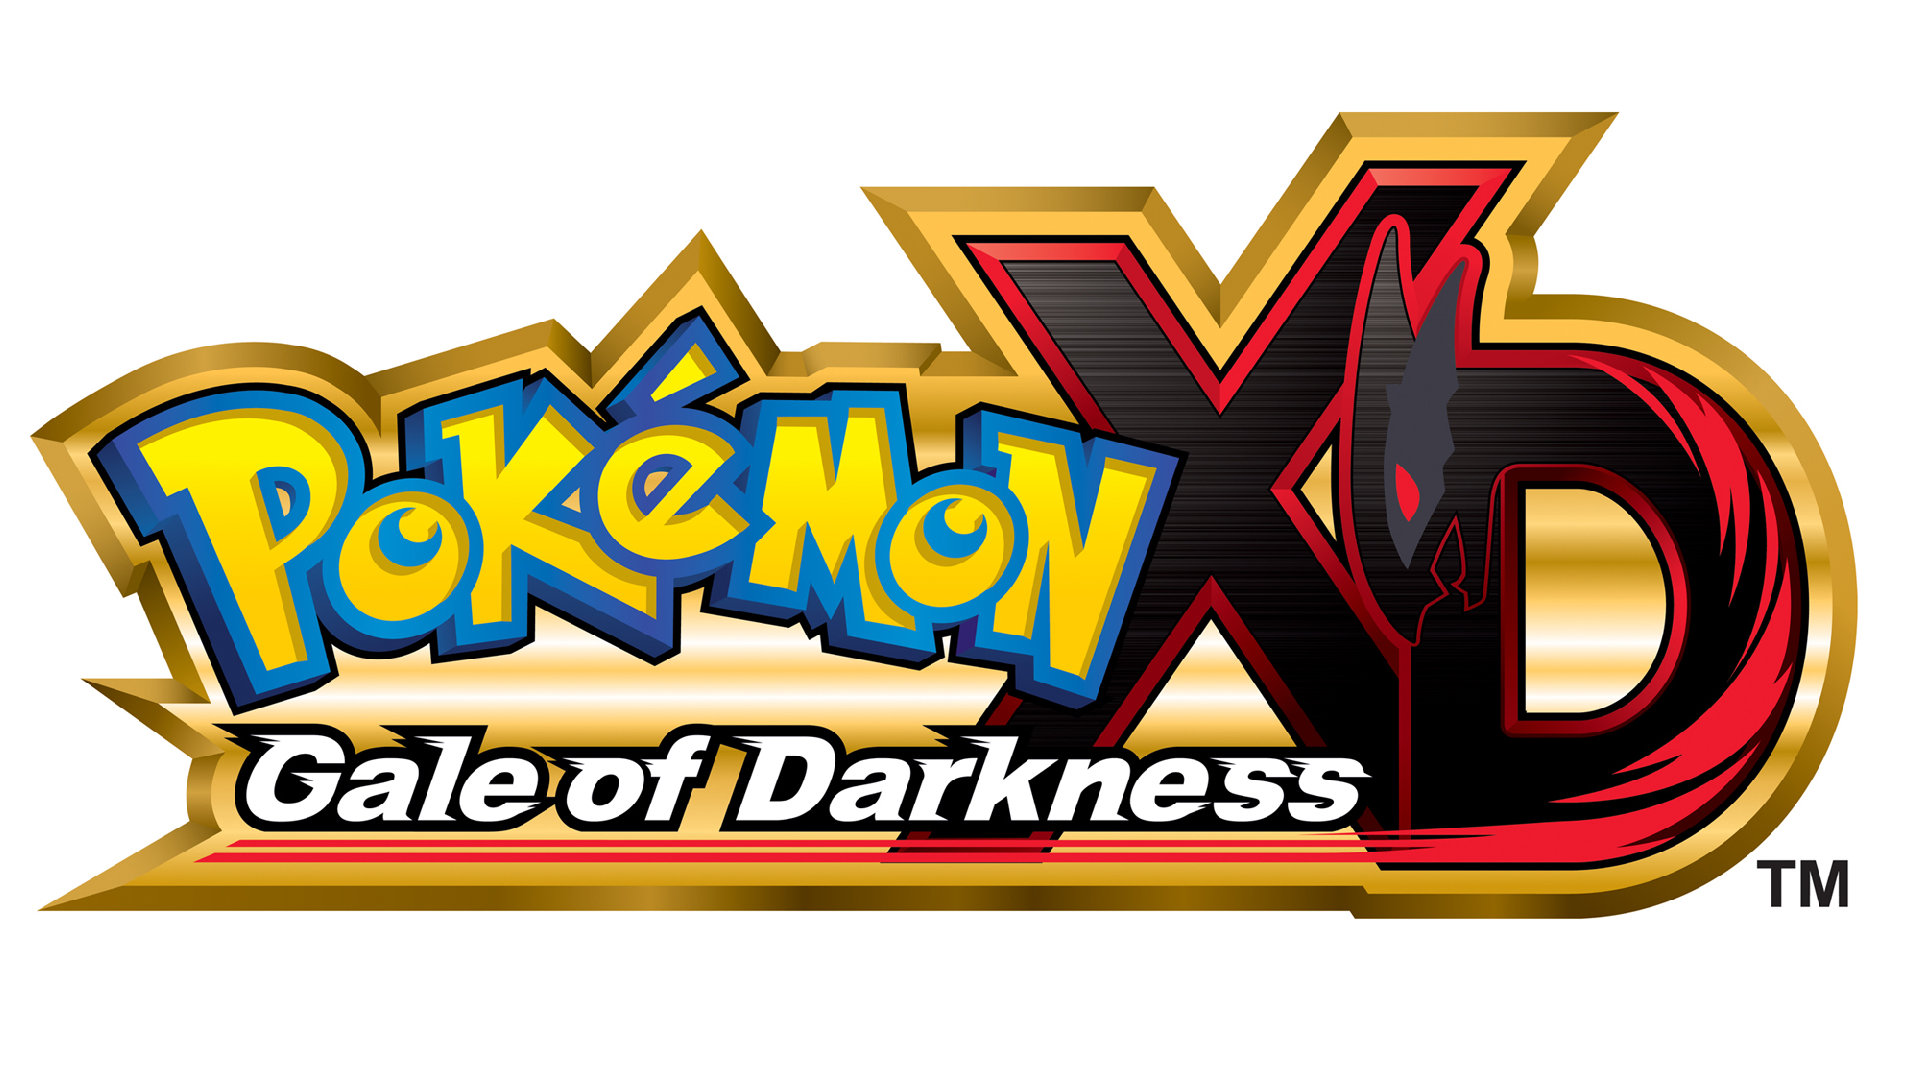 Pokémon XD: Gale of Darkness Logo